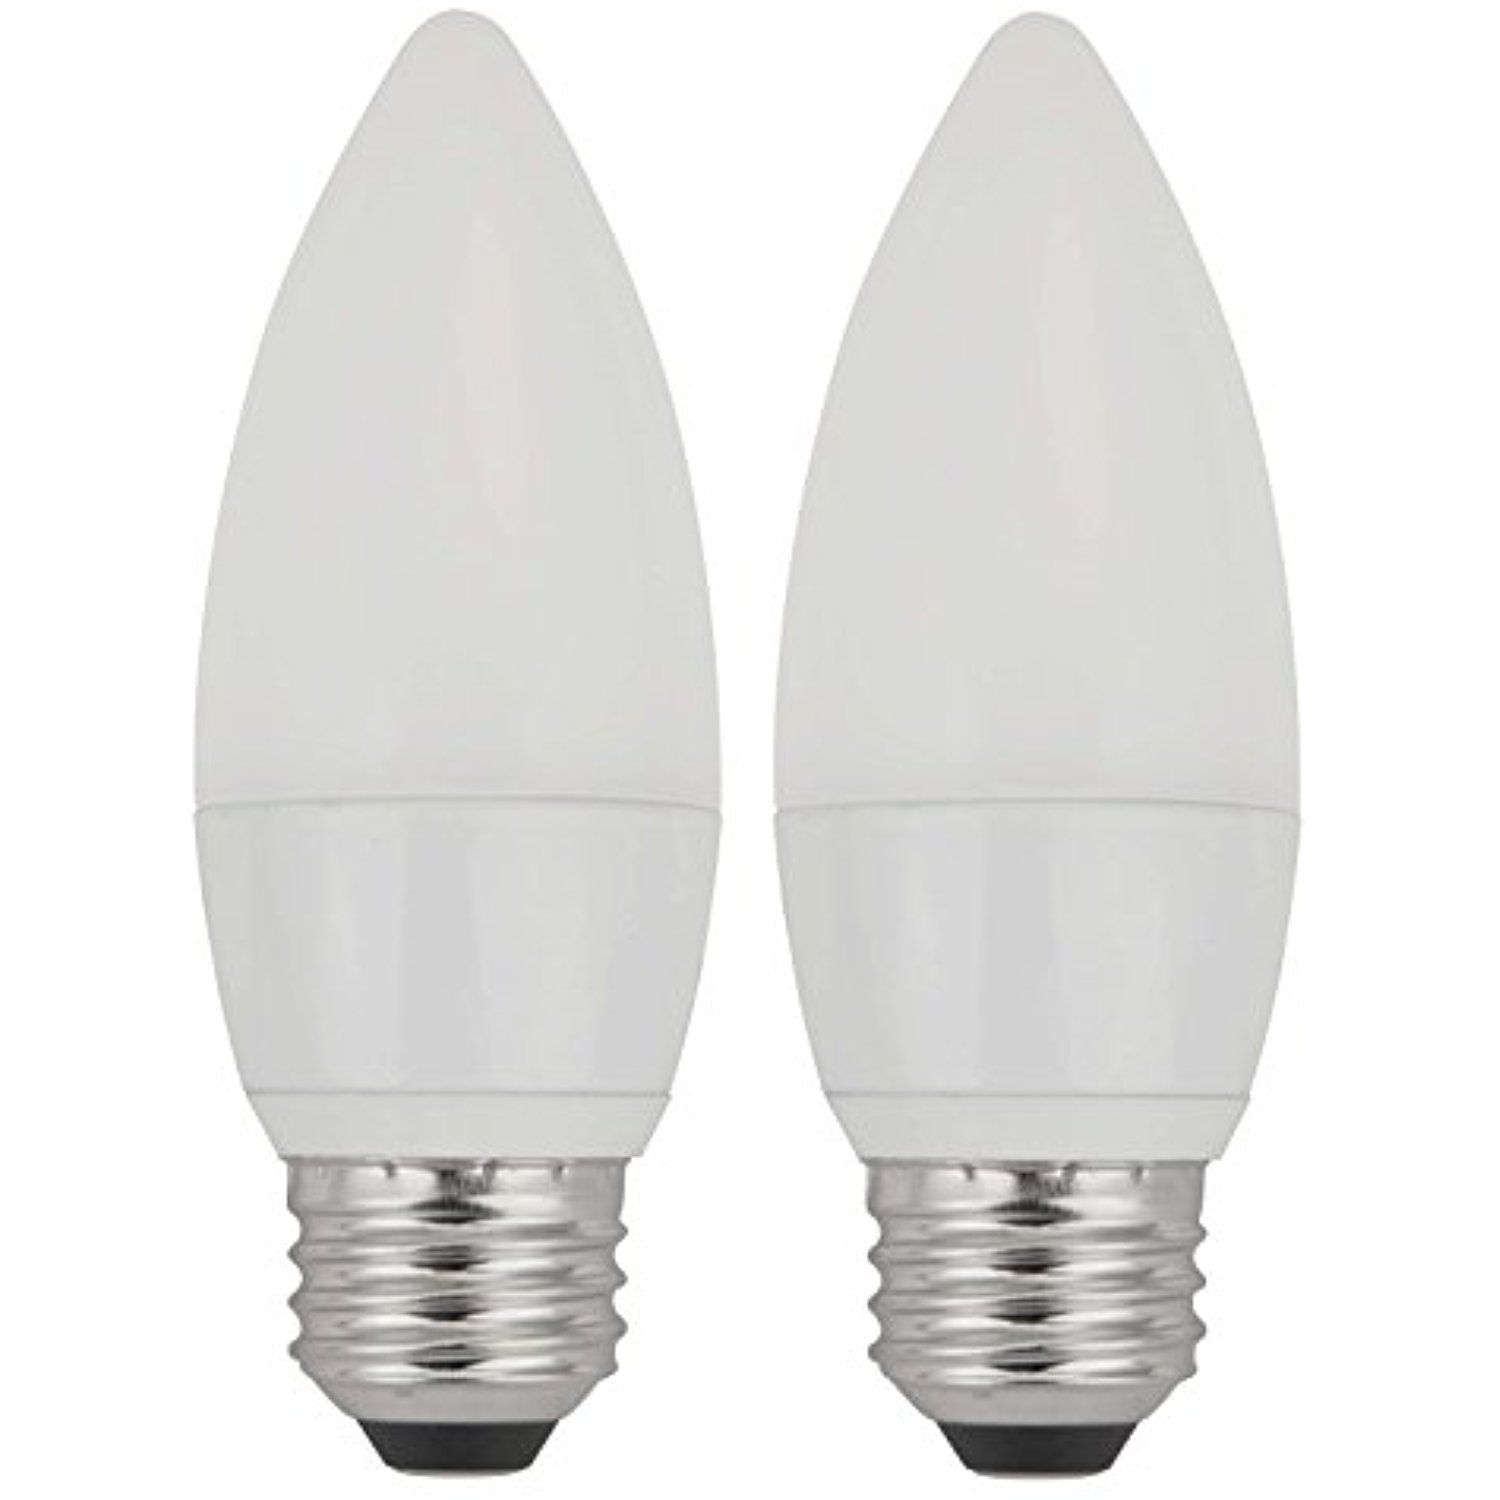 Tcp 40w Equivalent Led Frosted Torpedo Deco Light Bulbs